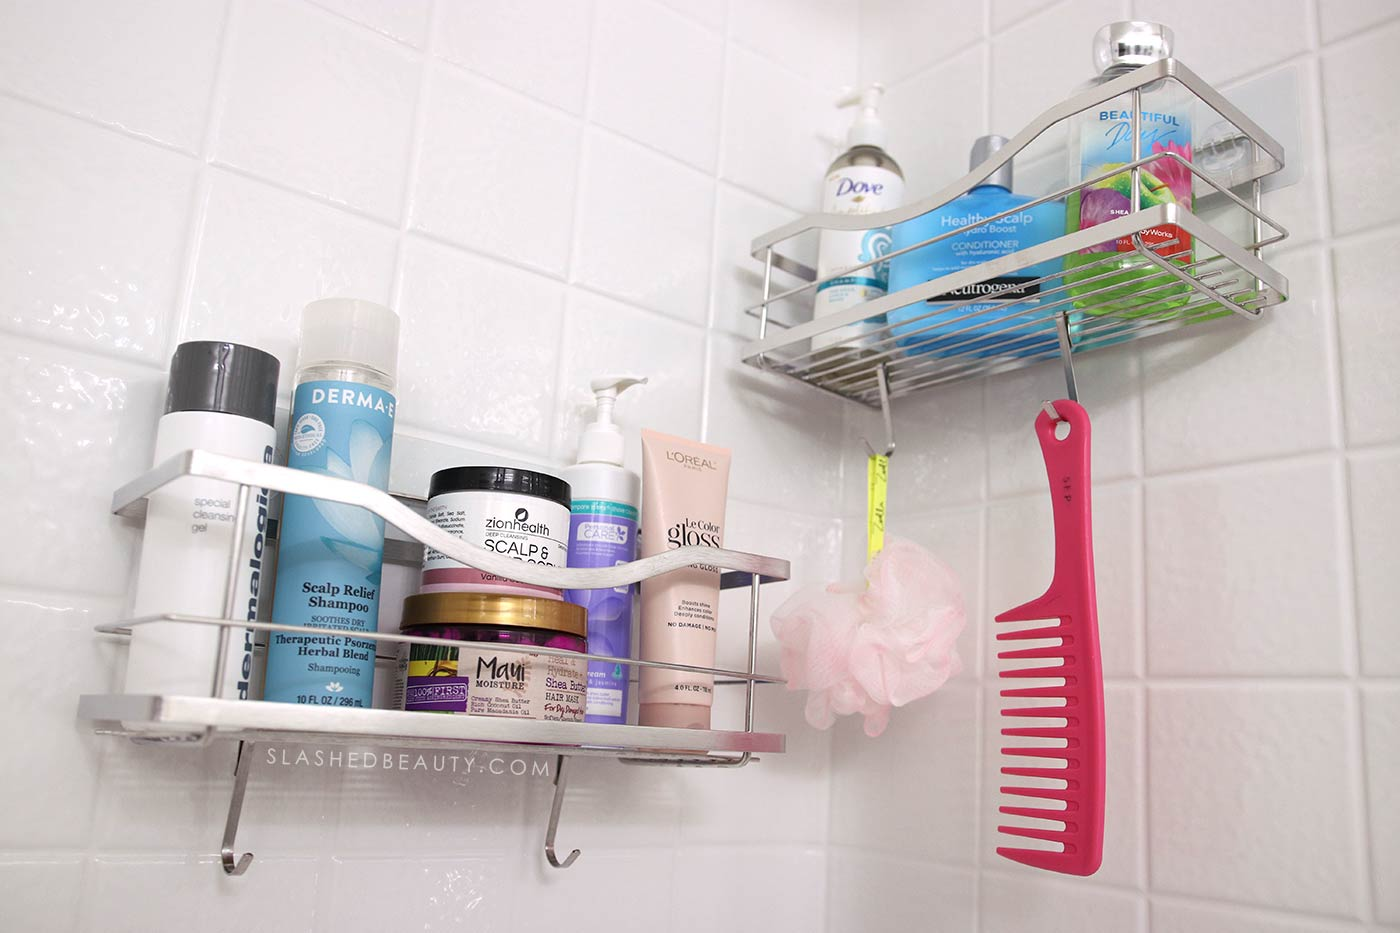 Best Stick On Shower Shelves Shower Caddy for Small Shower | 3 Must-Have Shower Accessories for Small Spaces from Amazon | Slashed Beauty